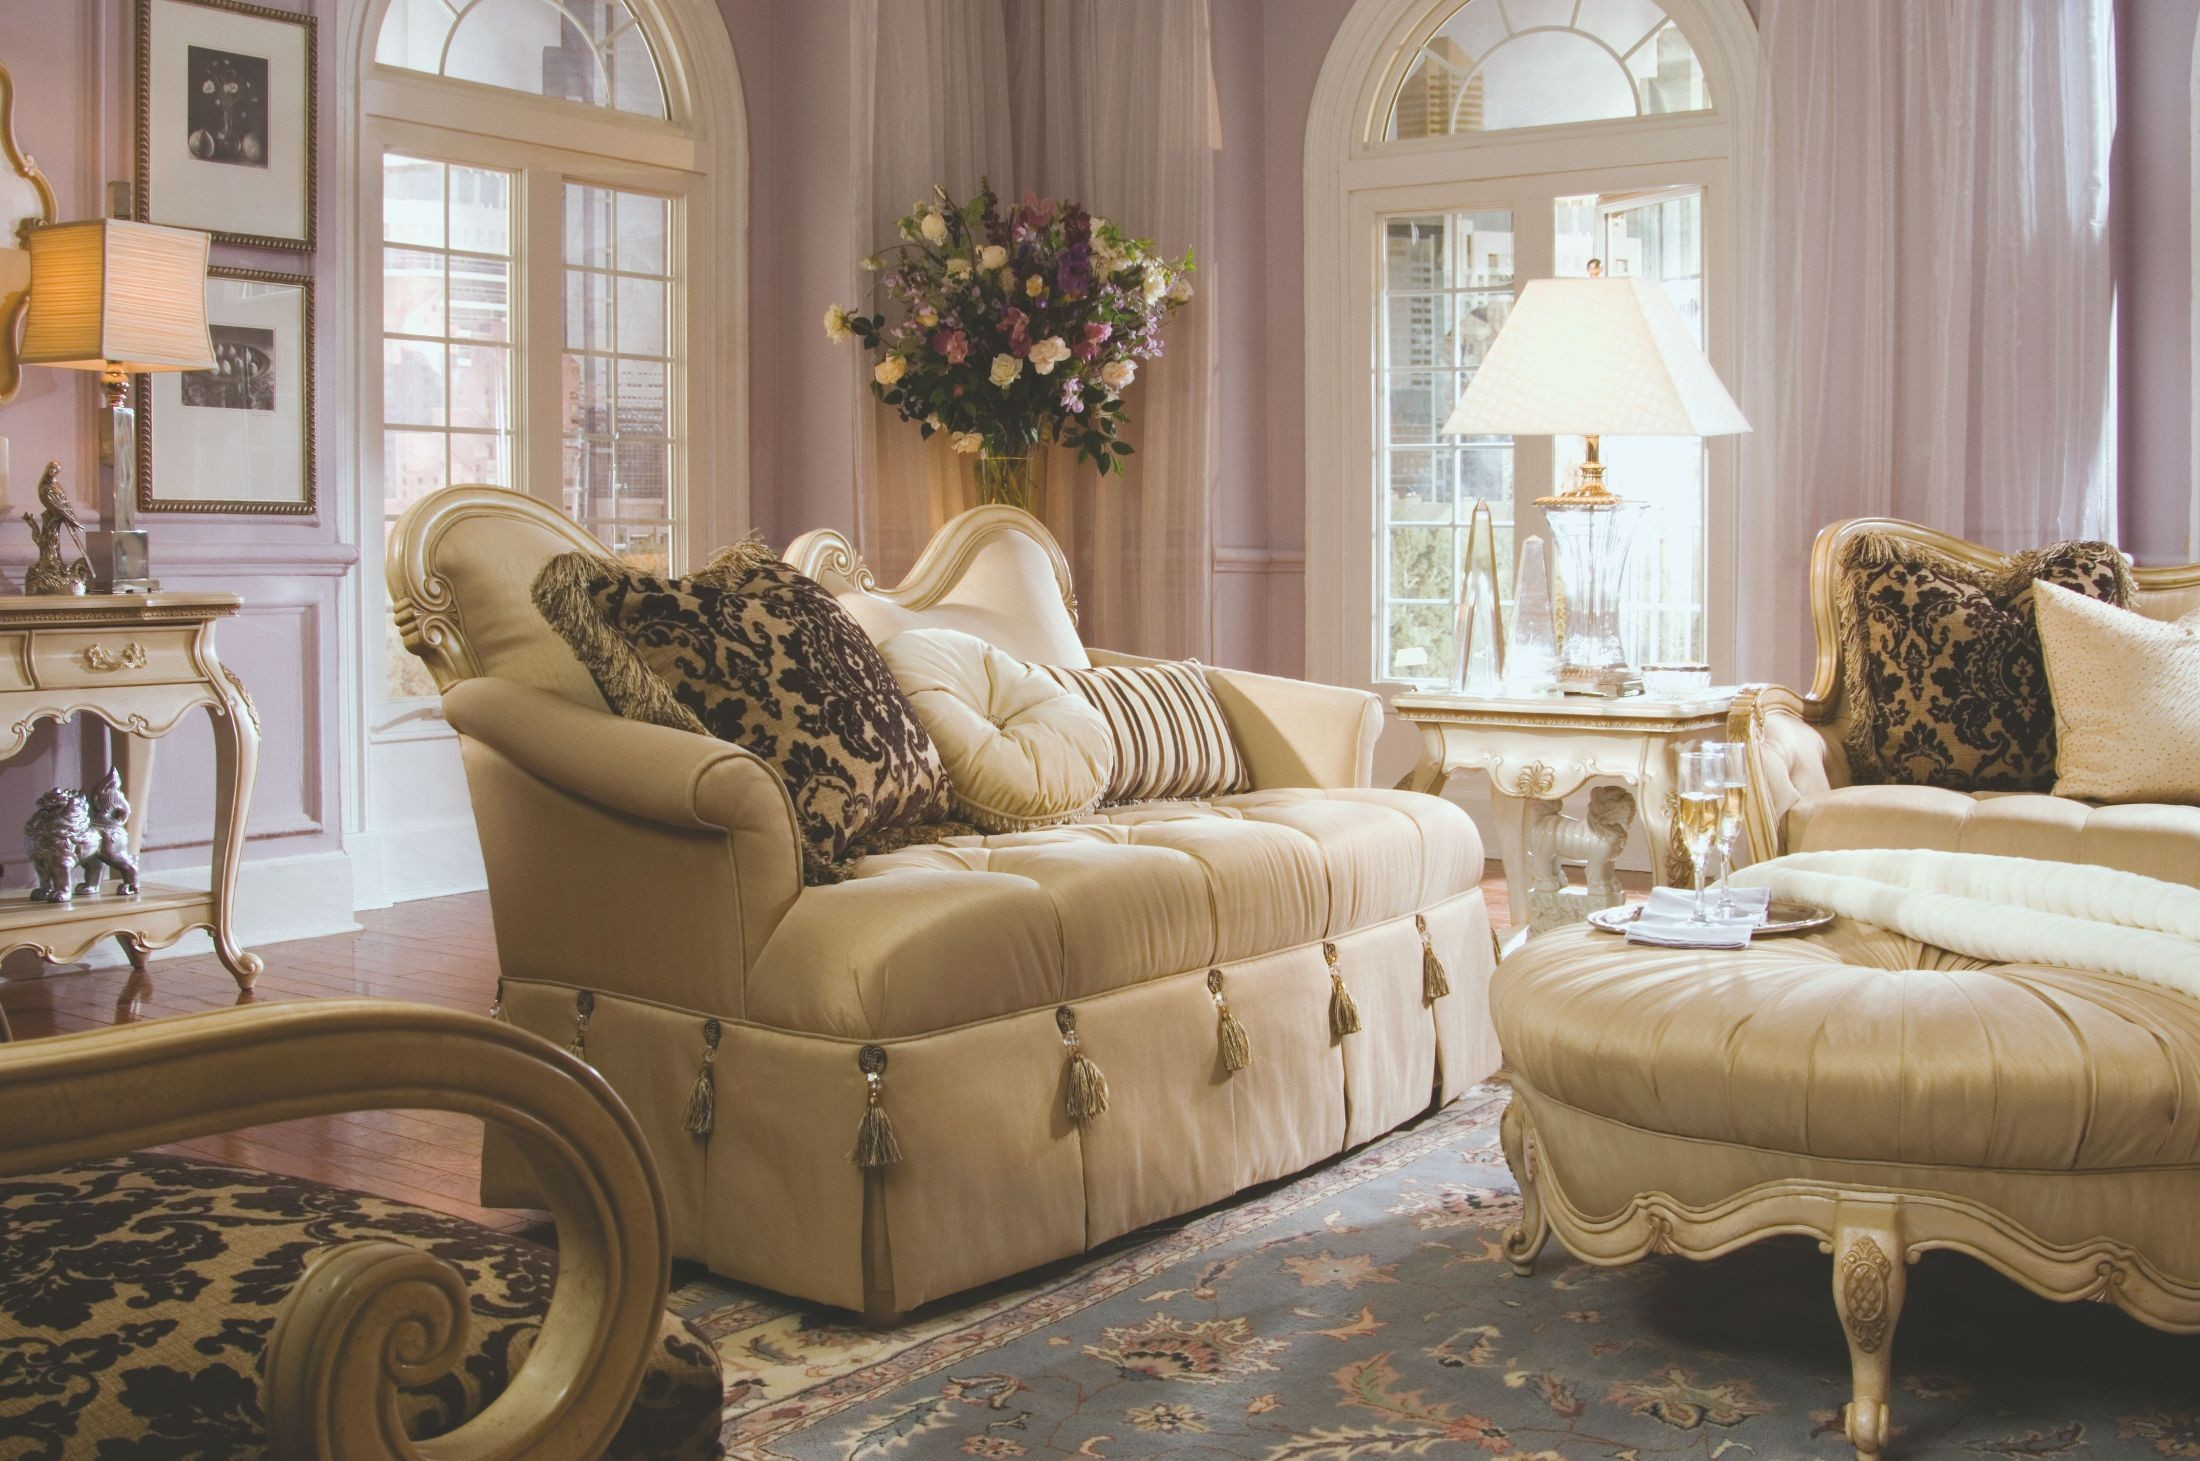 lavelle blanc living room set from aico 54815 coleman